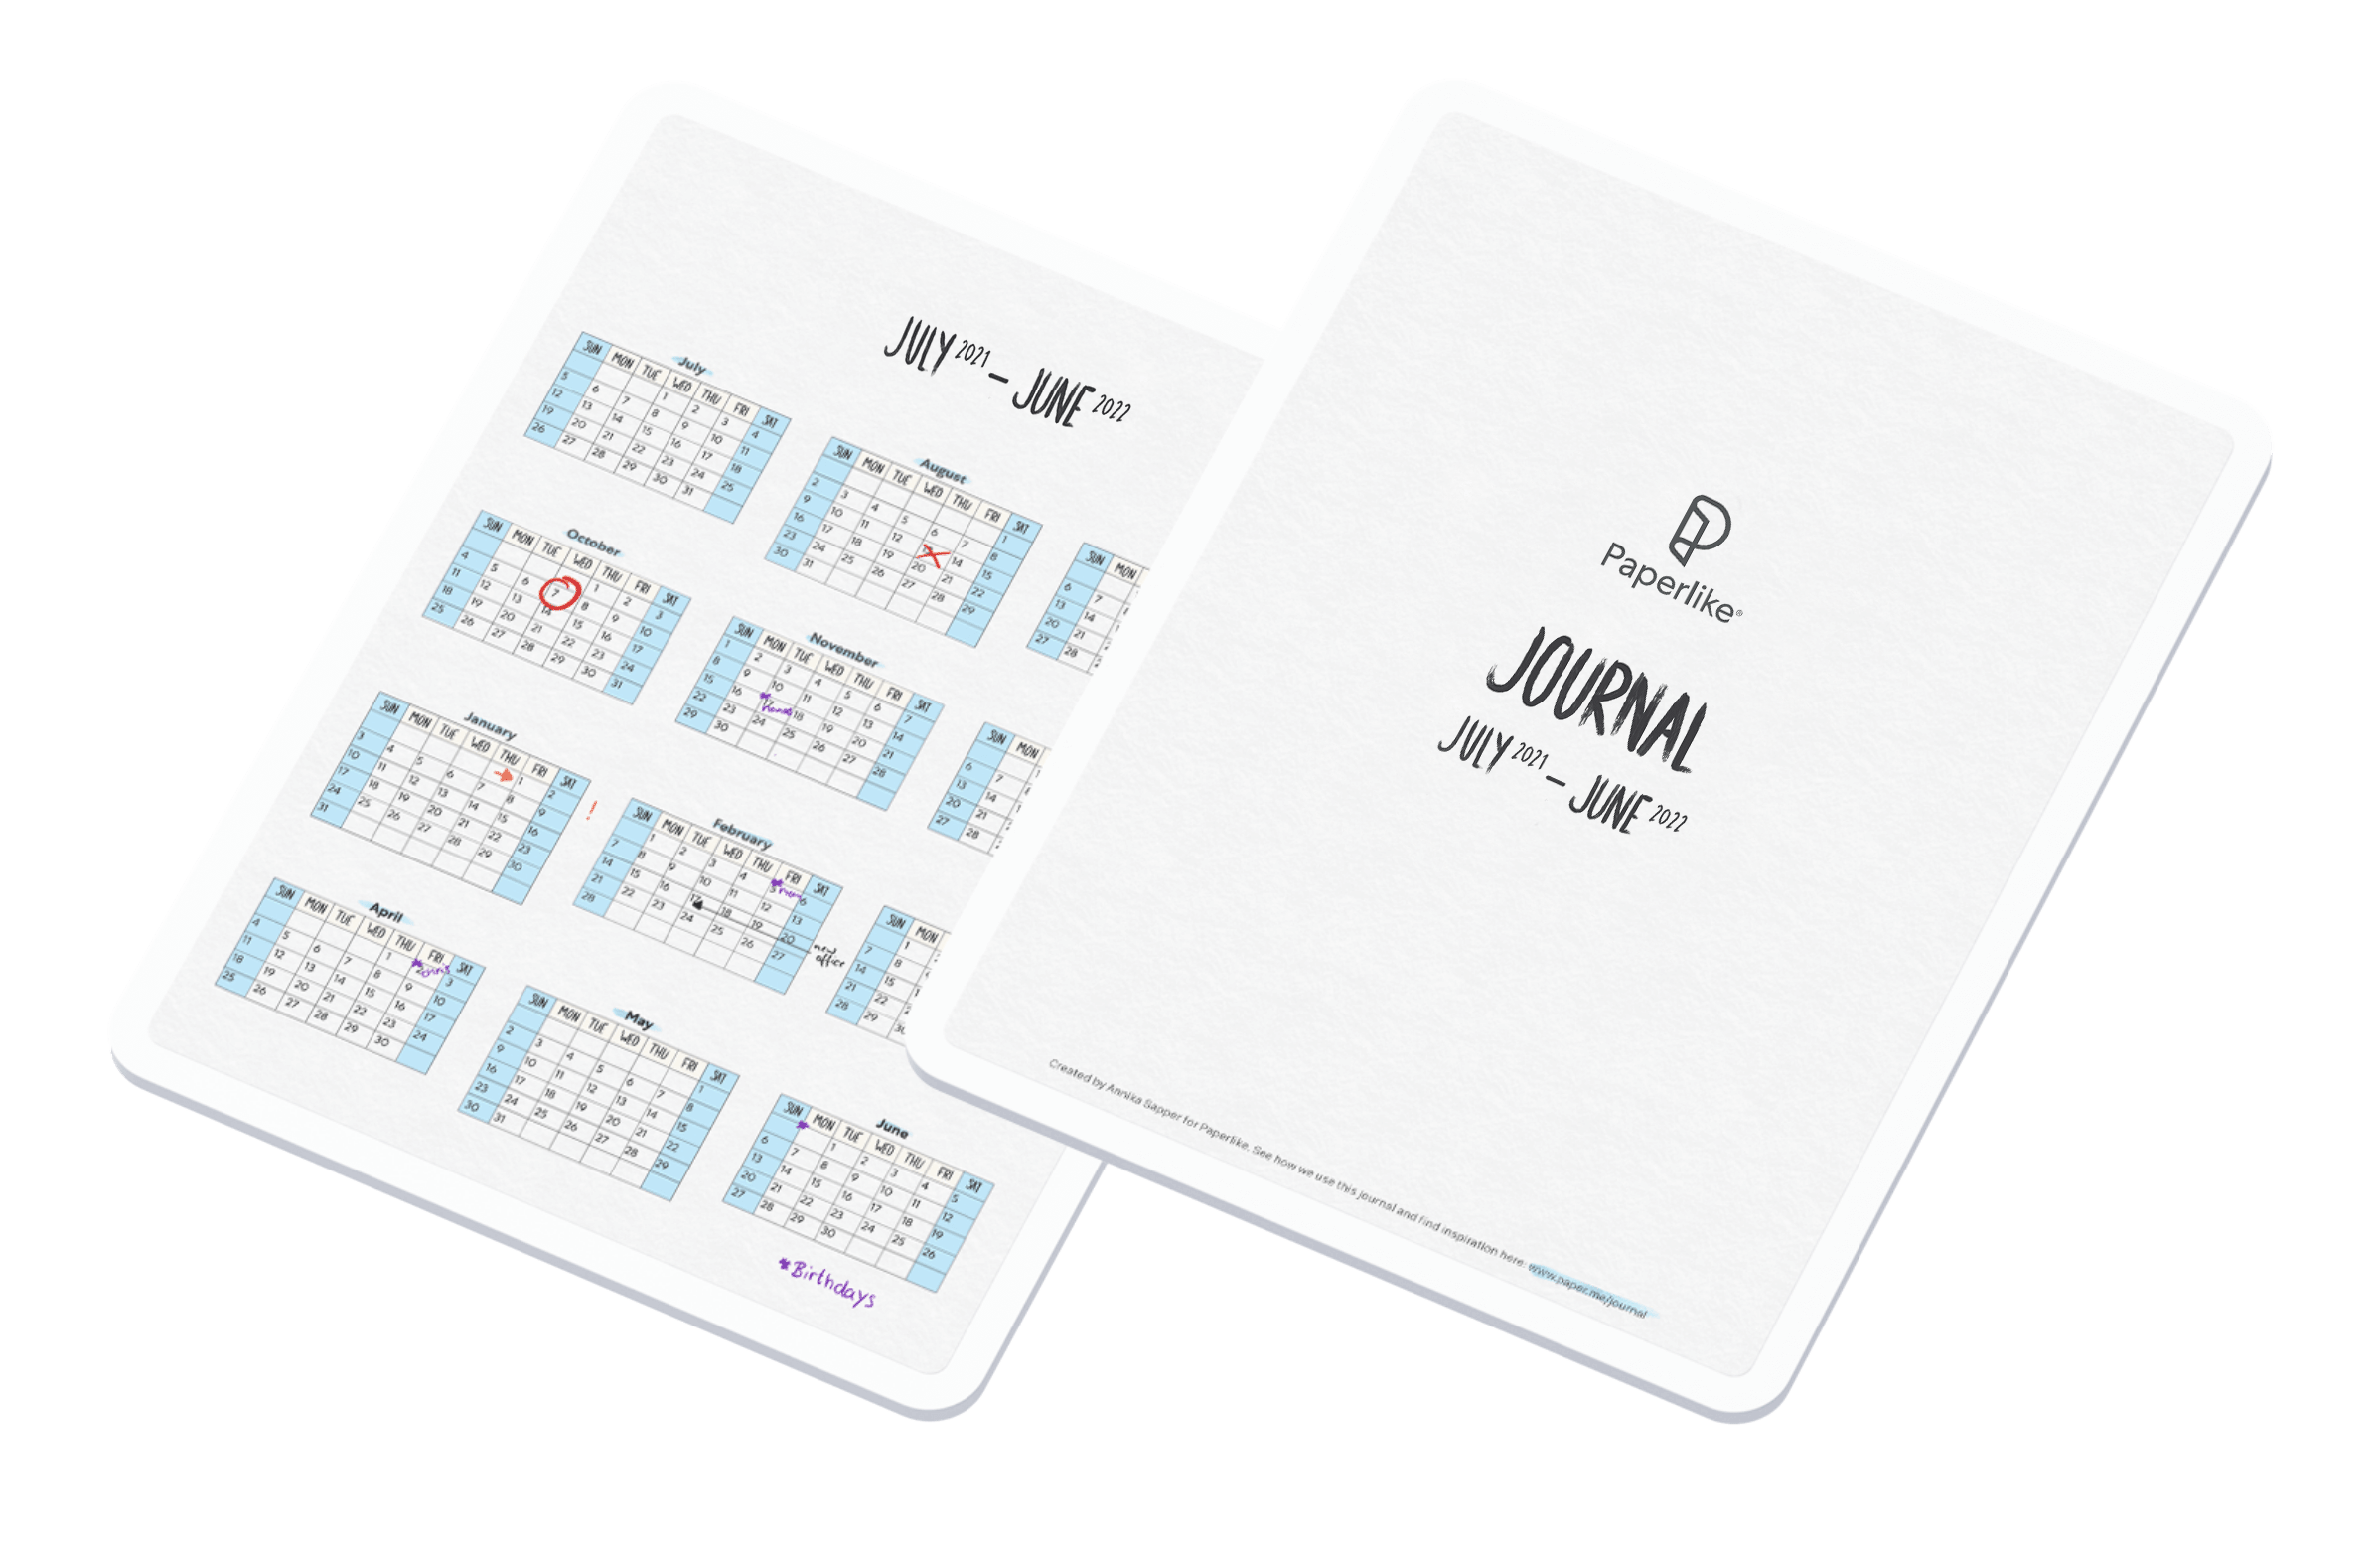 Image of iPads with the Paperlike Digital Journal